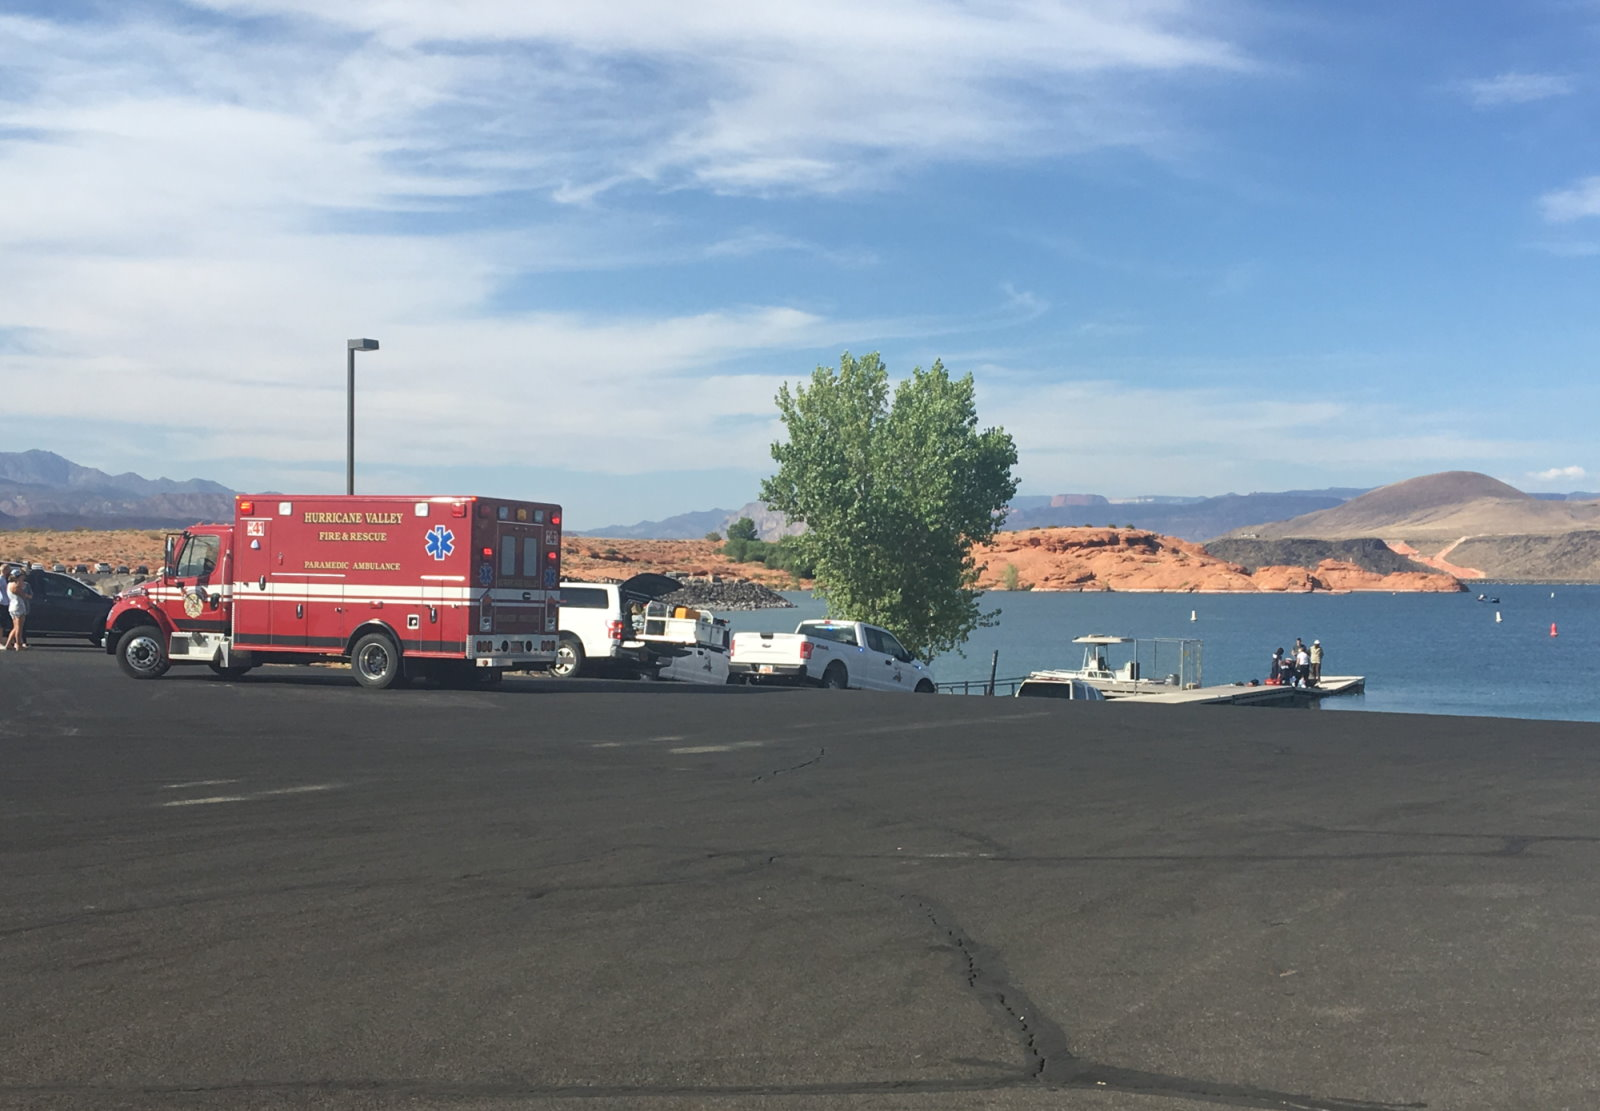 nevada man identified in sand hollow drowning st george news rh stgeorgeutah com